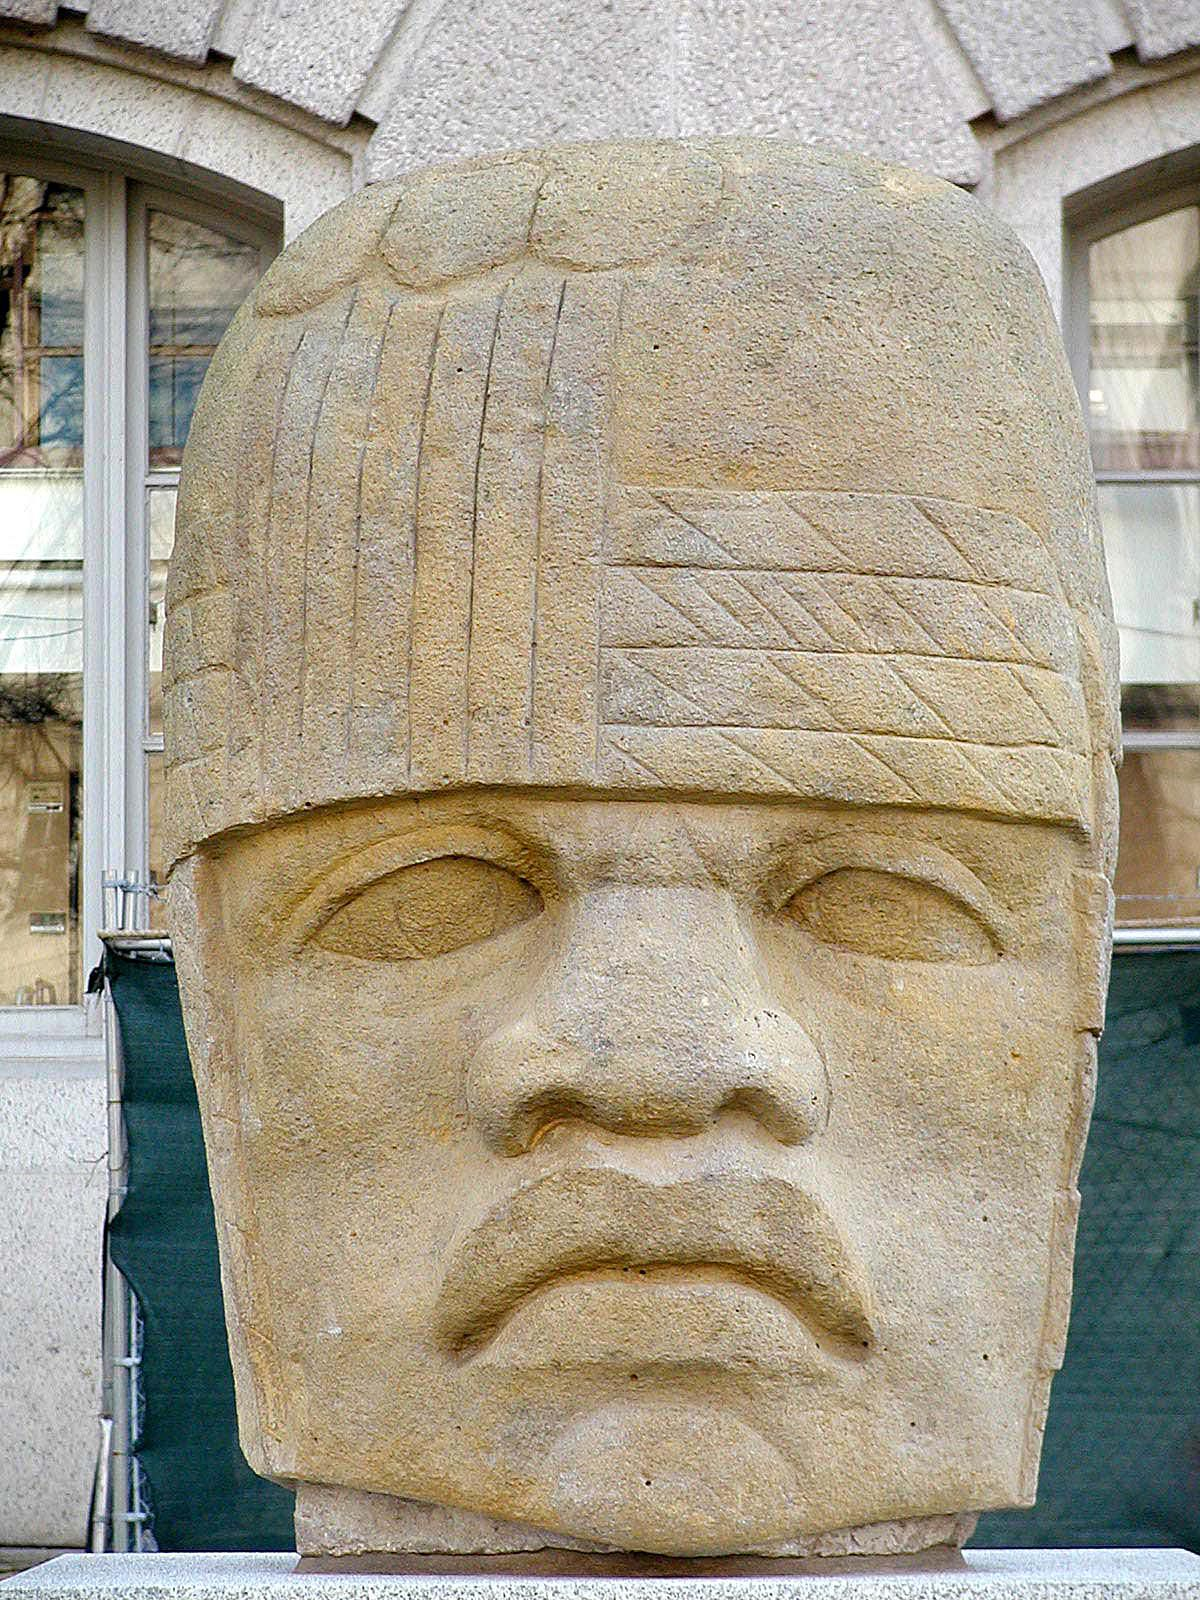 Olmec People A Timeline and History...